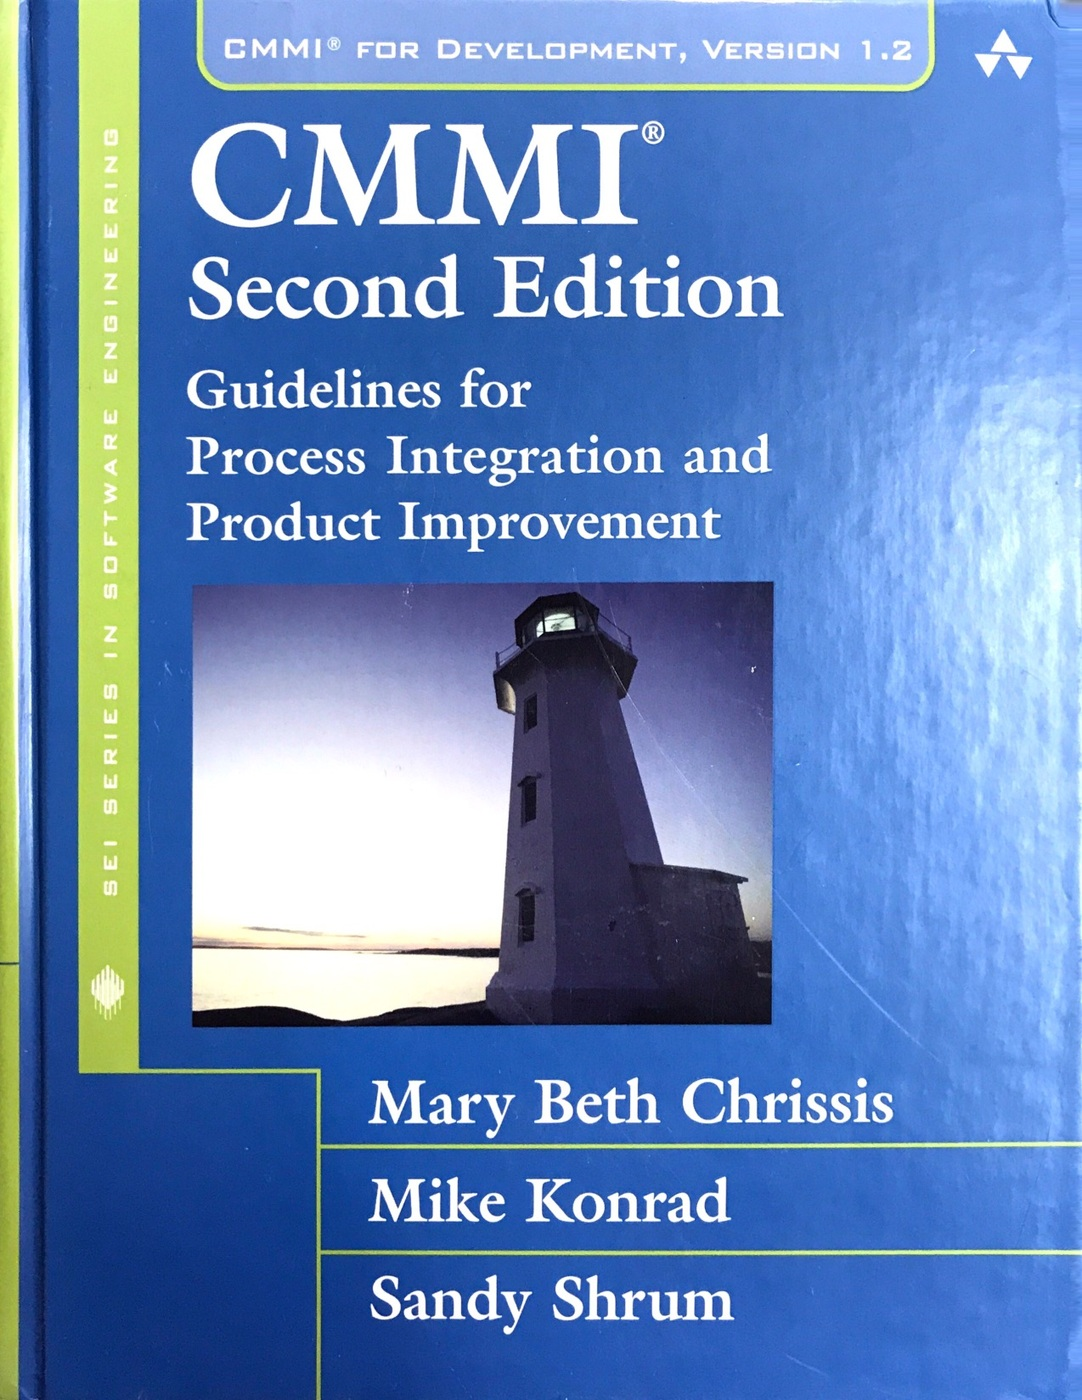 Книга CMMI: Guidelines for Process Integration and Product Improvement. Mary Beth Chrissis, Mike Konrad, Sandra Shrum